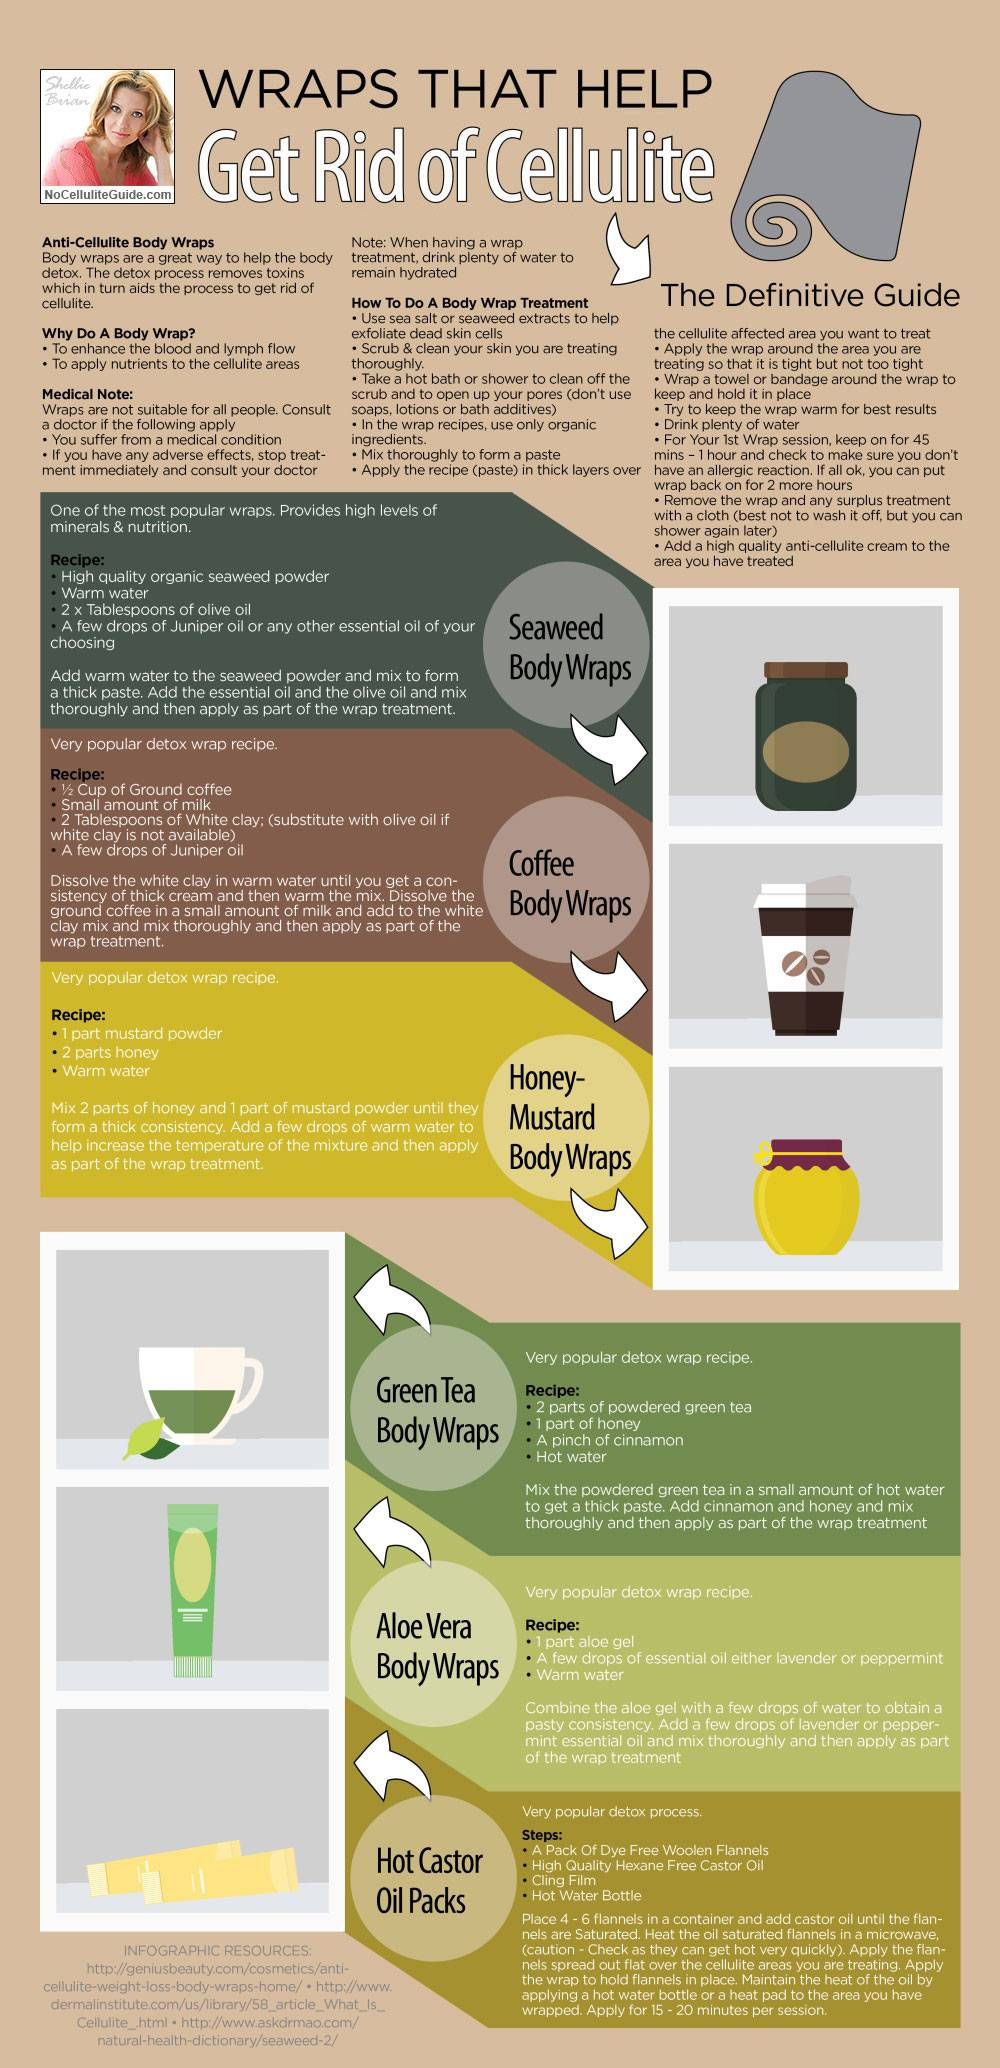 Wraps and Scrubs that Gets Rid of Cellulite - The Definitive Guide (Infographic)